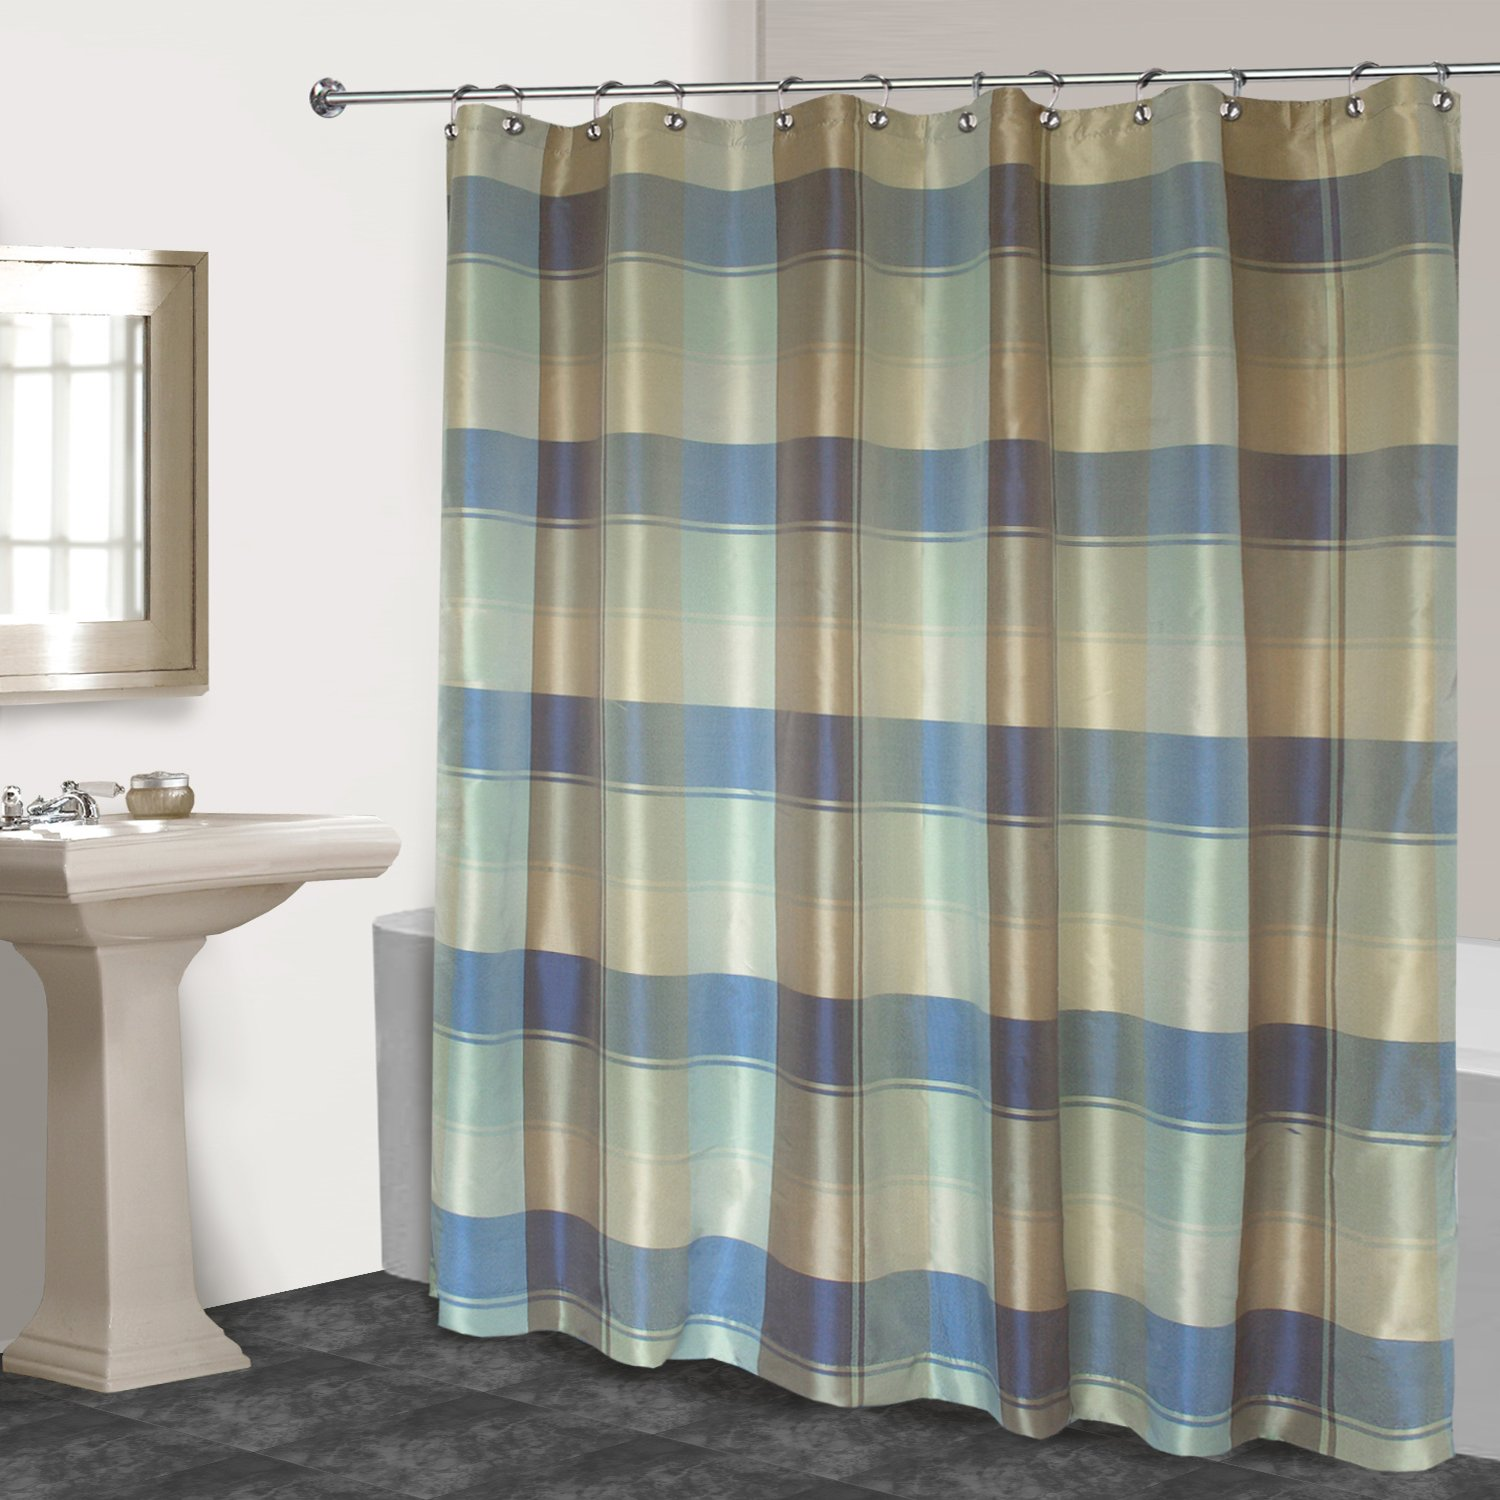 United Curtain Plaid Shower Curtain 70 By 72 Inch Blue